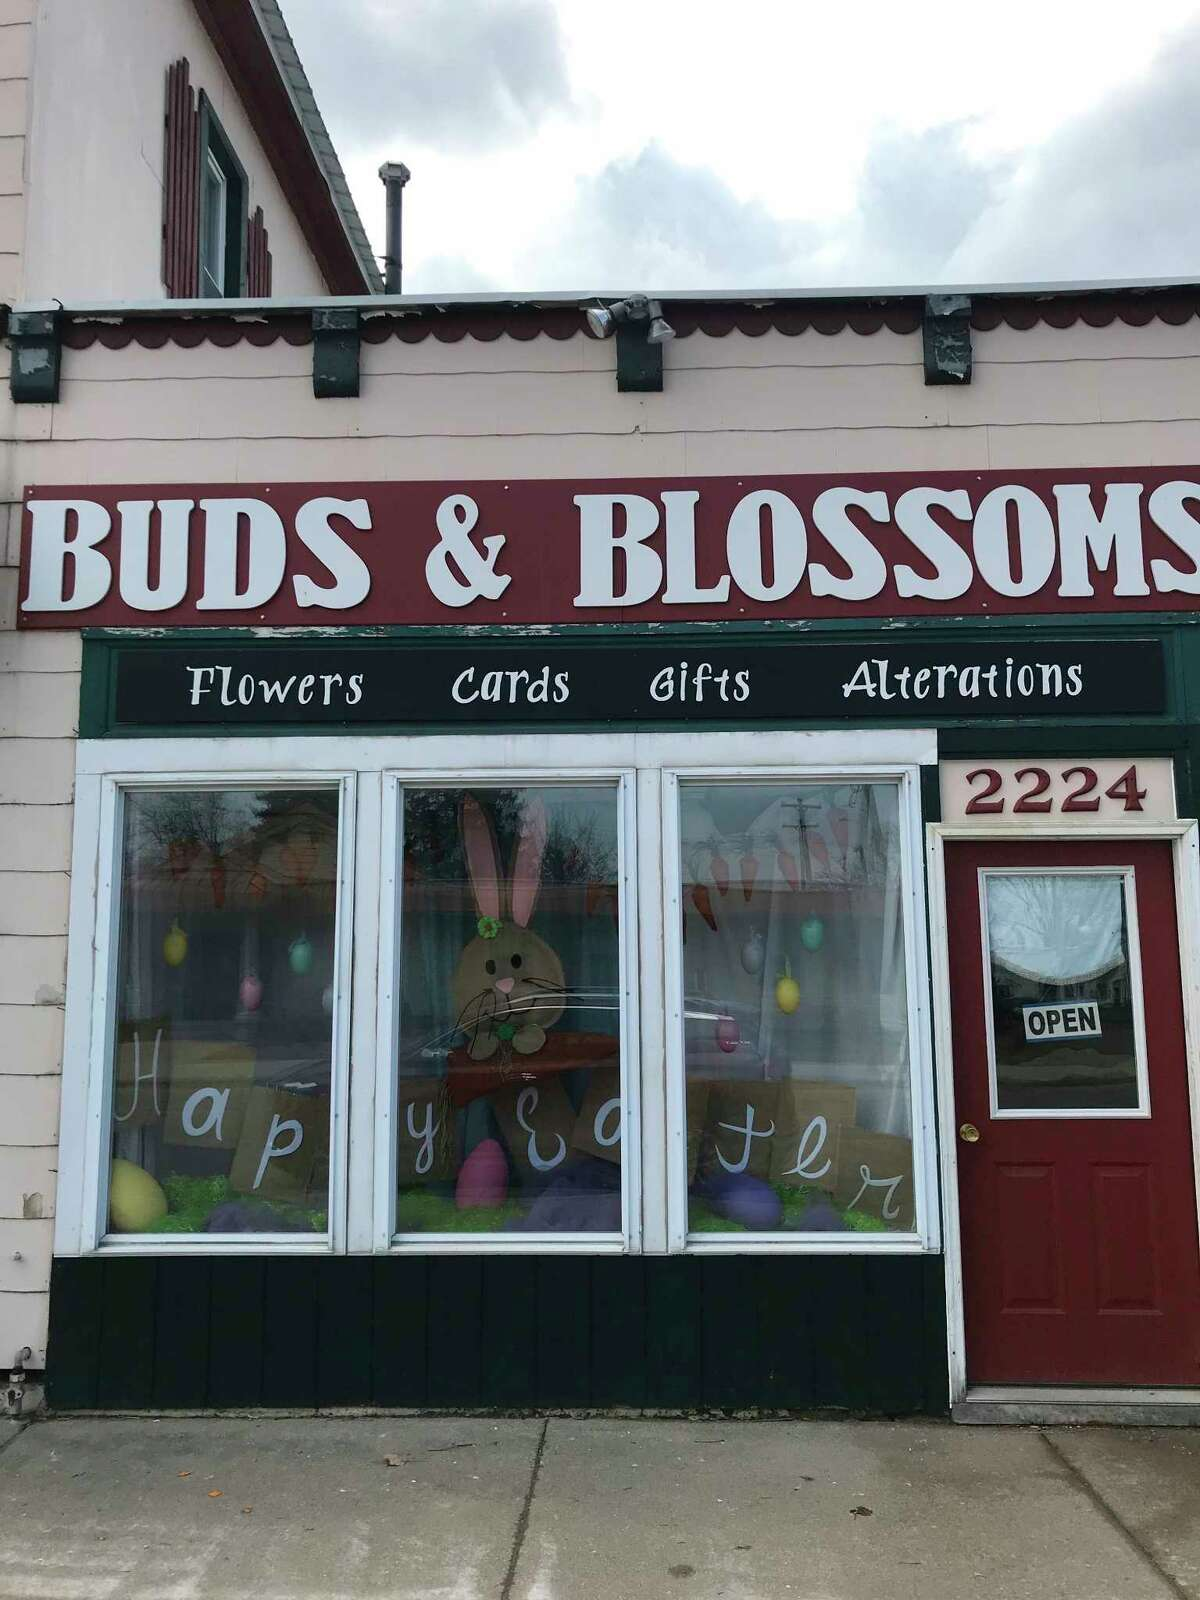 The Buds & Blossoms flower shop in Ubly is preparing for its busy season coming in the next couple of months. (Courtesy Photo)